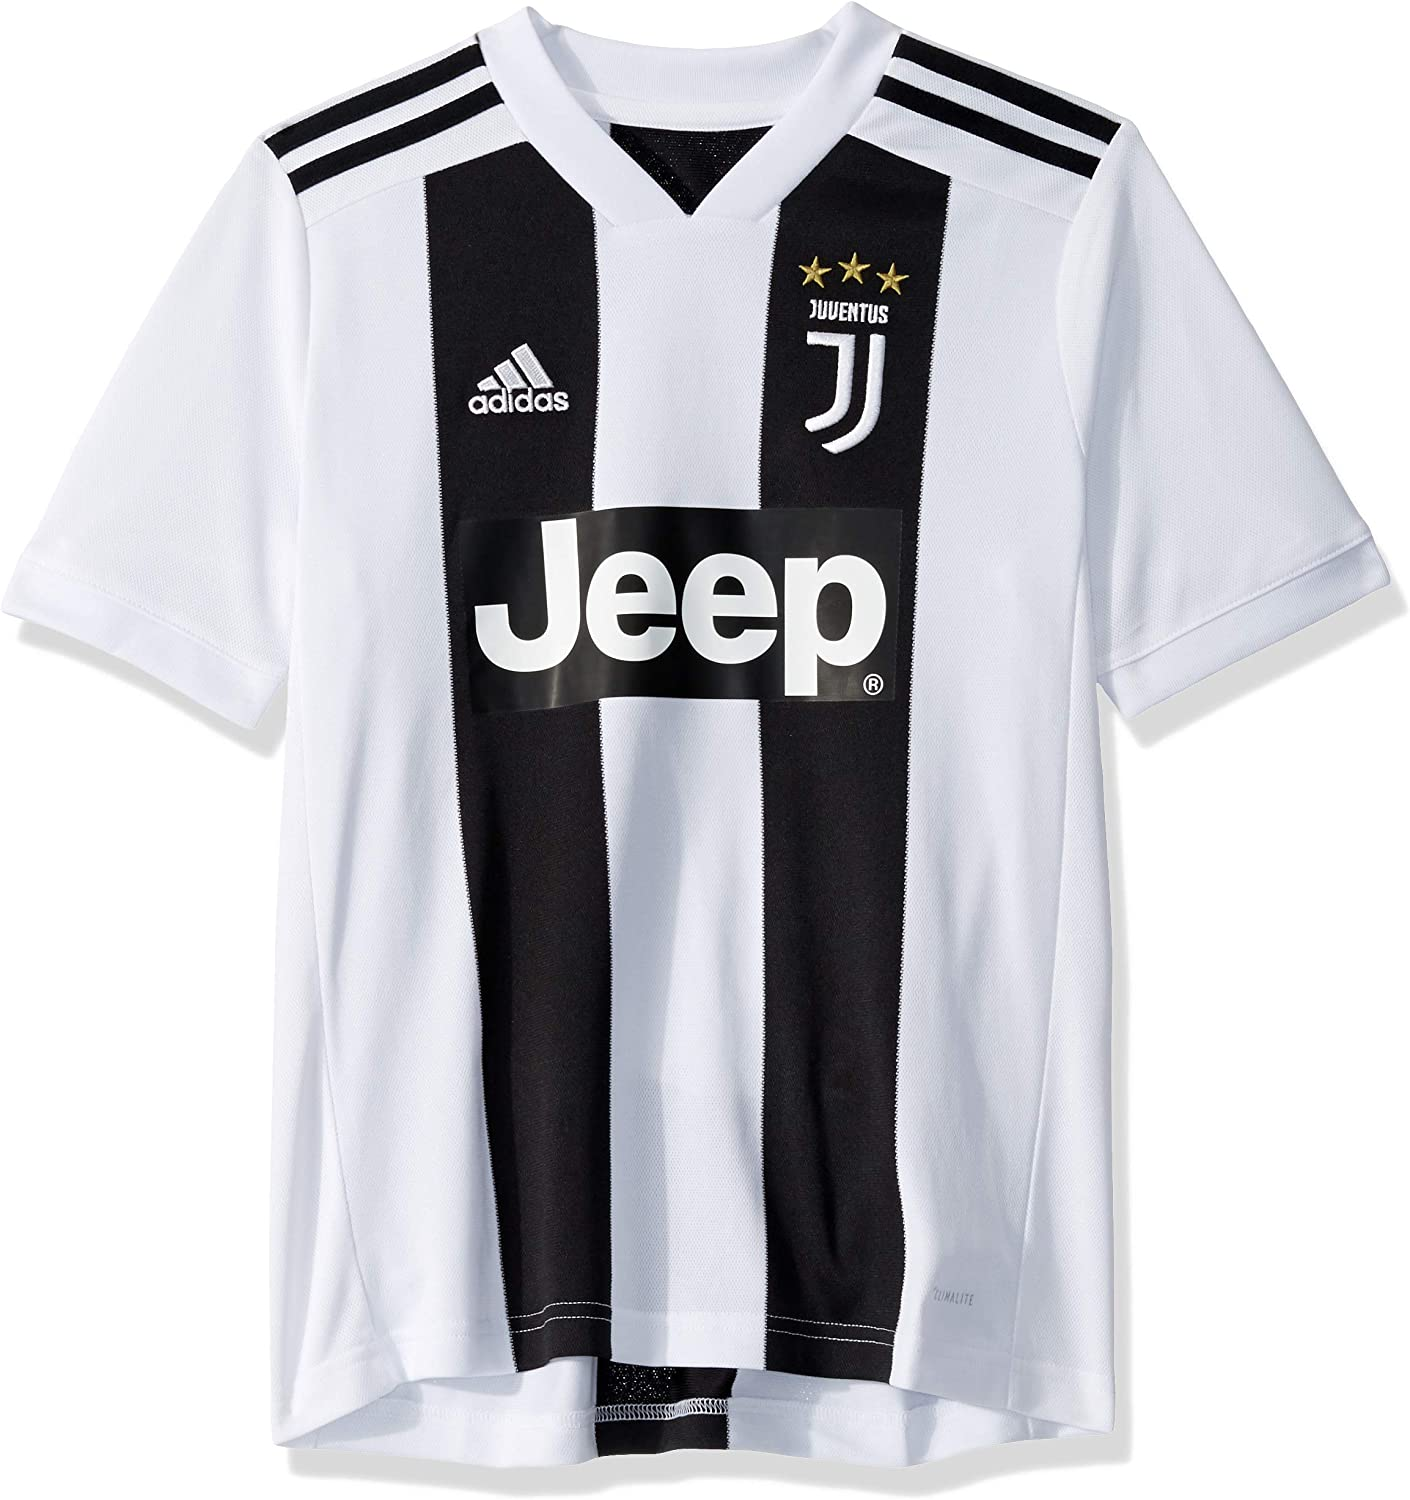 amazon com adidas soccer youth juventus fc home jersey clothing adidas soccer youth juventus fc home jersey